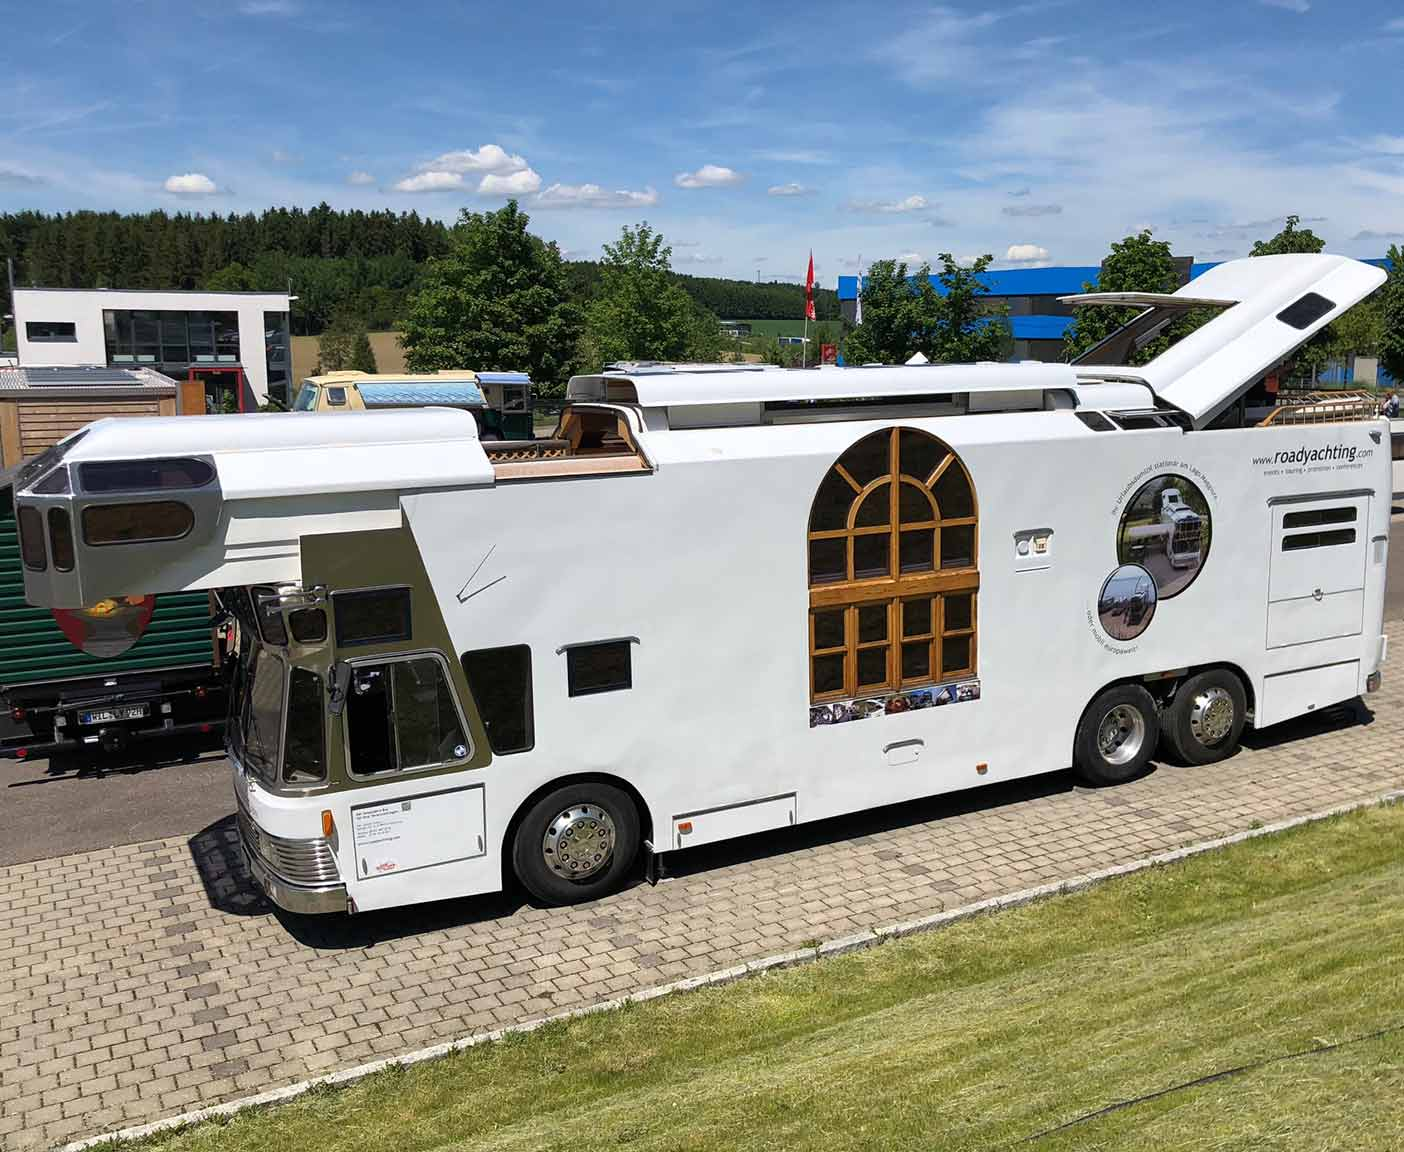 crazy-camping-oldtimer-hymer-museum-treffen-caravano-luxus-bus-road-yacht